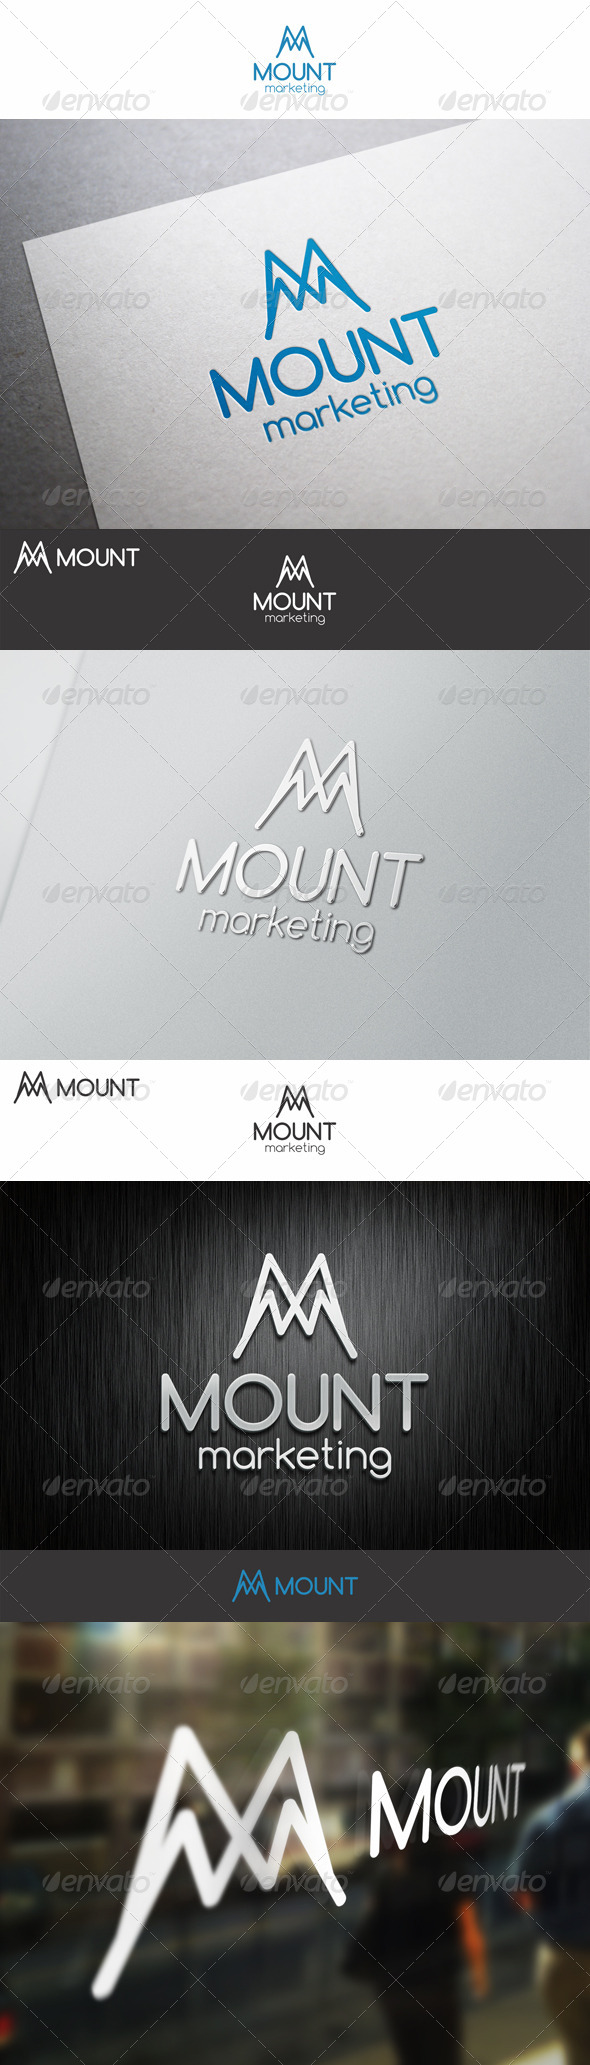 Mount Marketing M Logo Letter - Letters Logo Templates